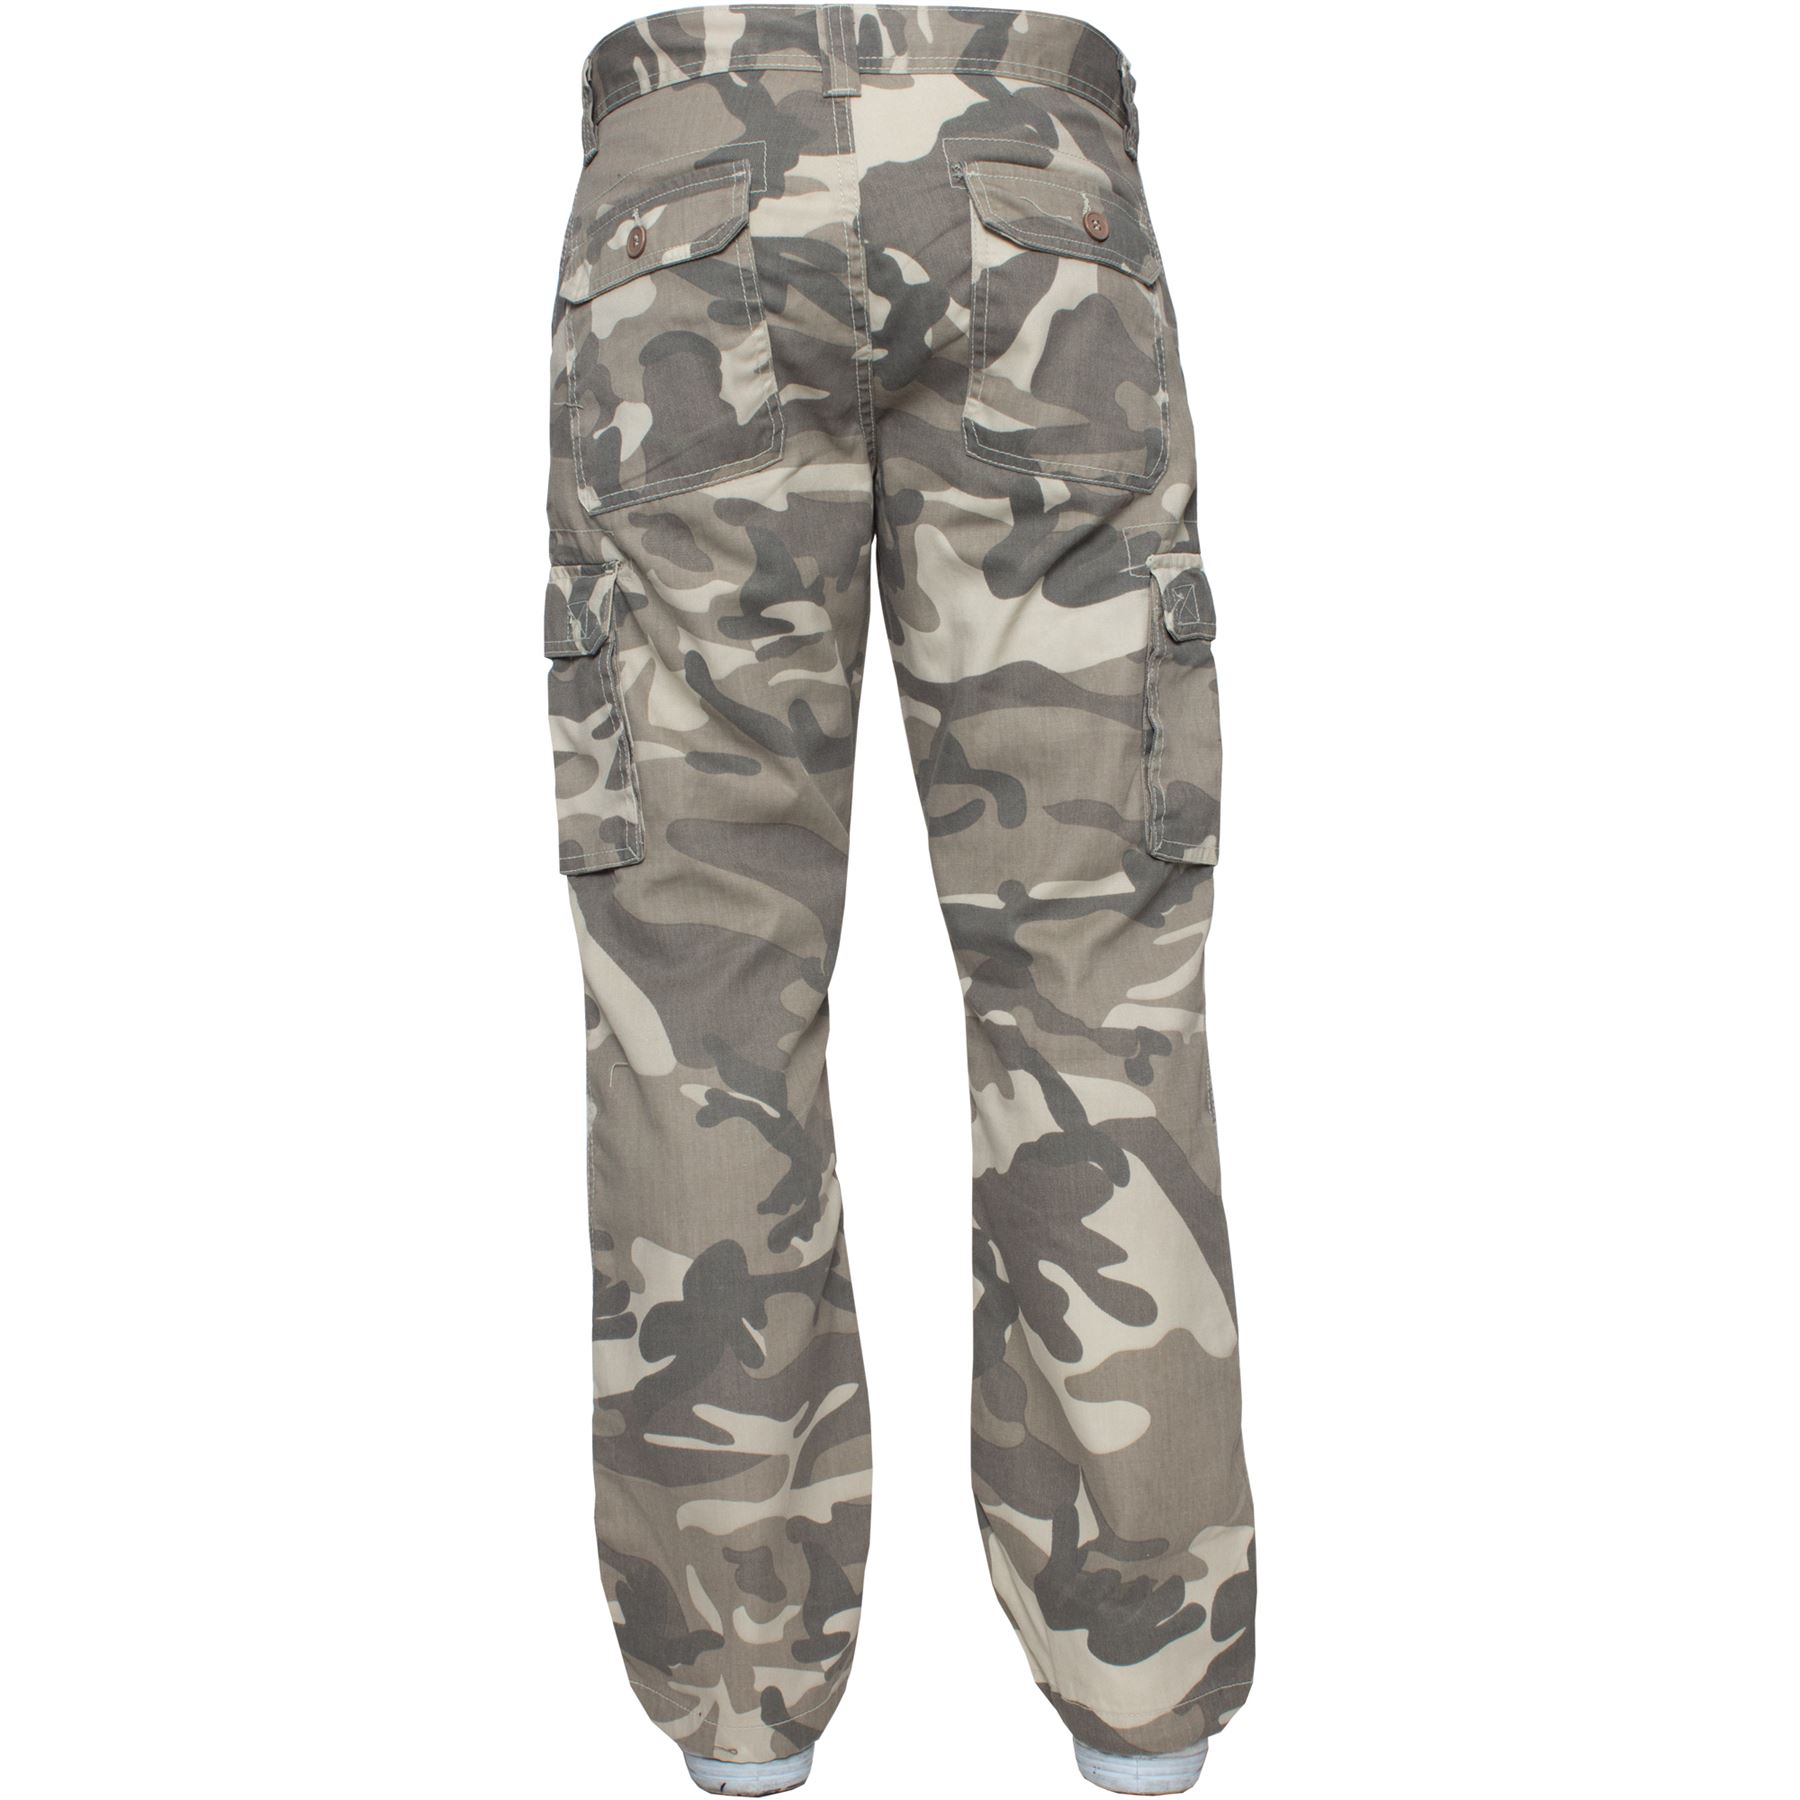 Kruze-Mens-Military-Combat-Trousers-Camouflage-Cargo-Camo-Army-Casual-Work-Pants miniatura 7